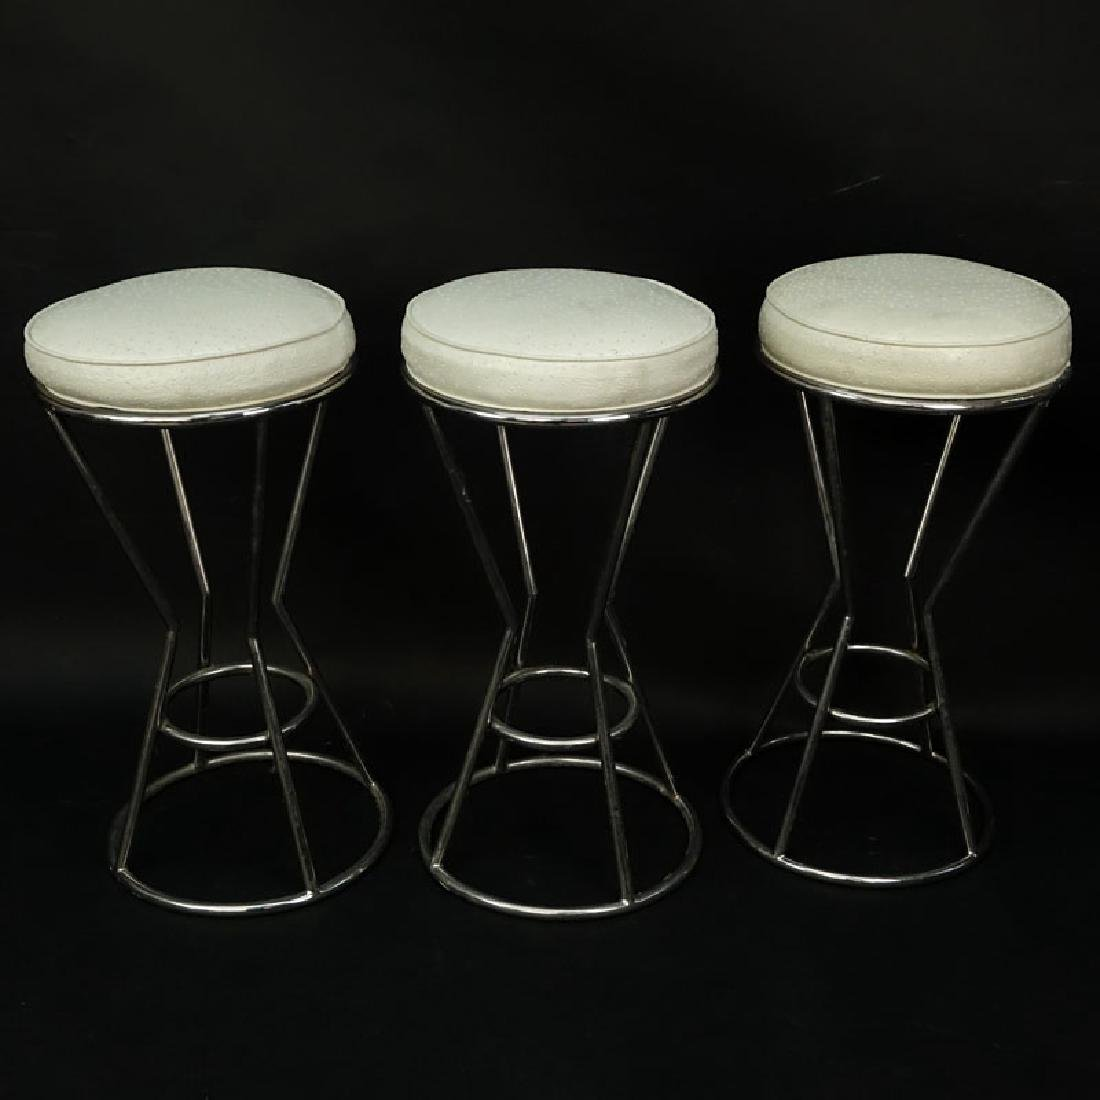 Set of Three (3) Modern Chrome and Faux Ostrich